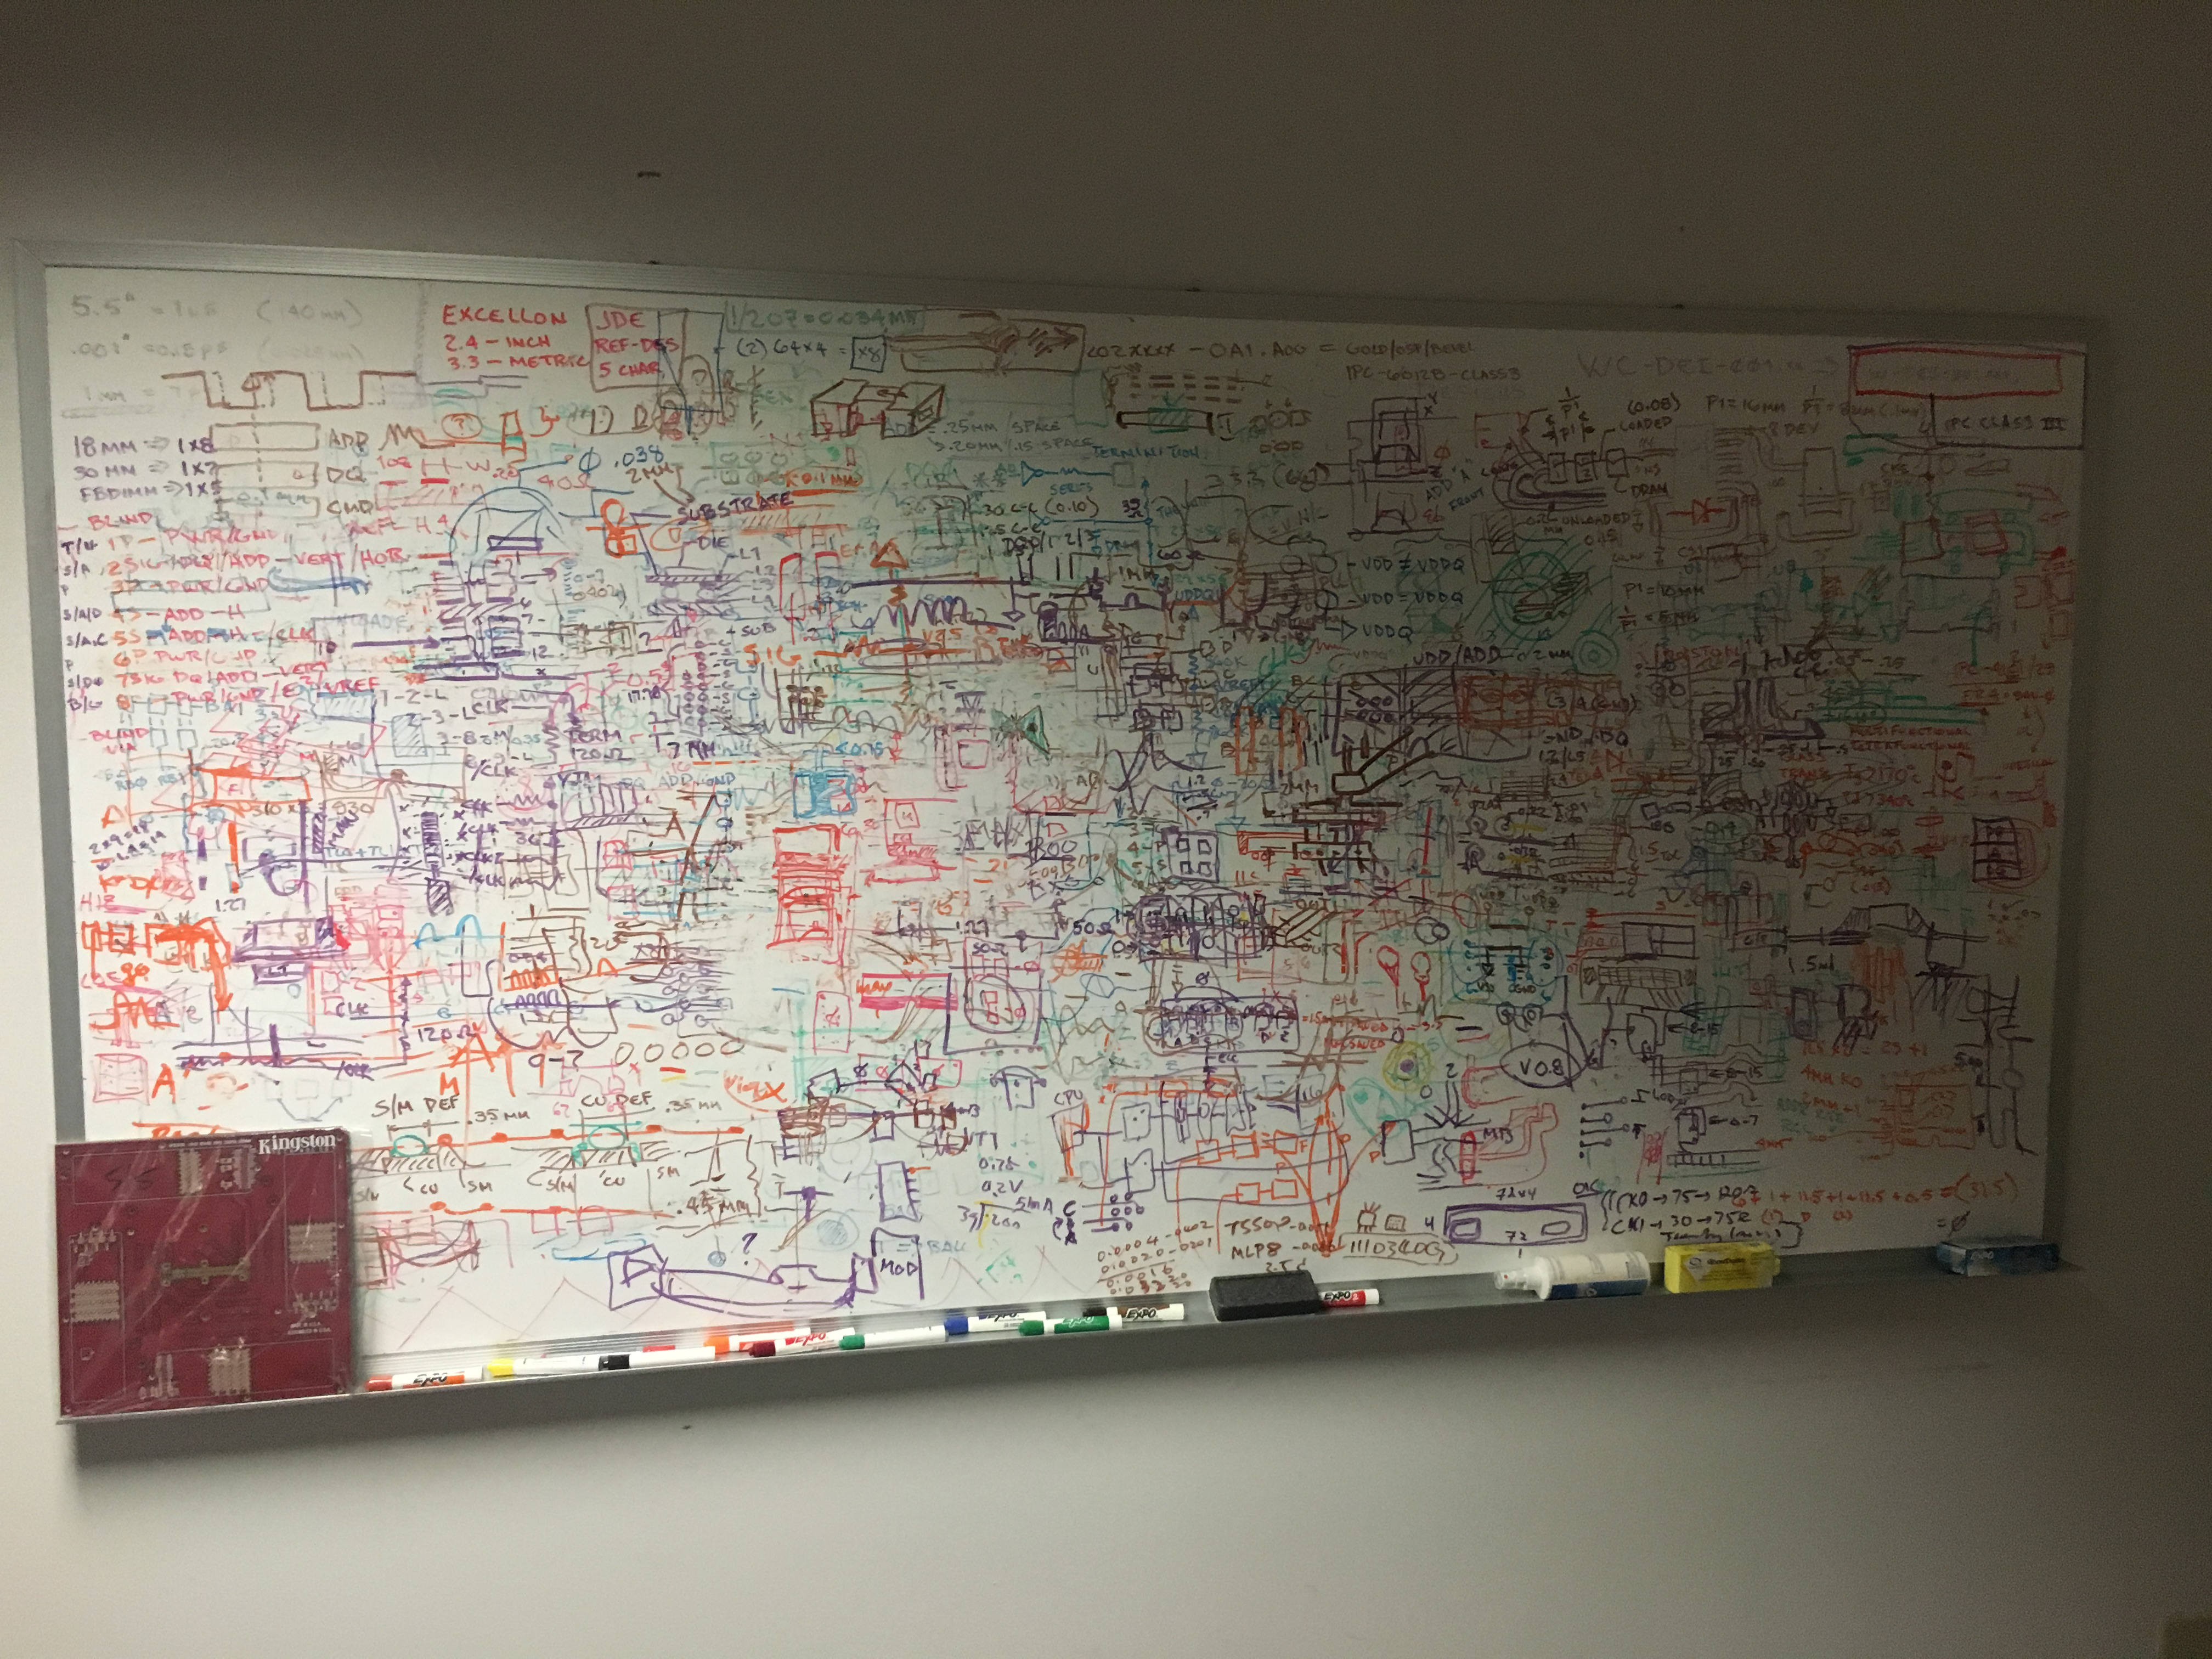 White Board in Engineering Room at Kingston HQ